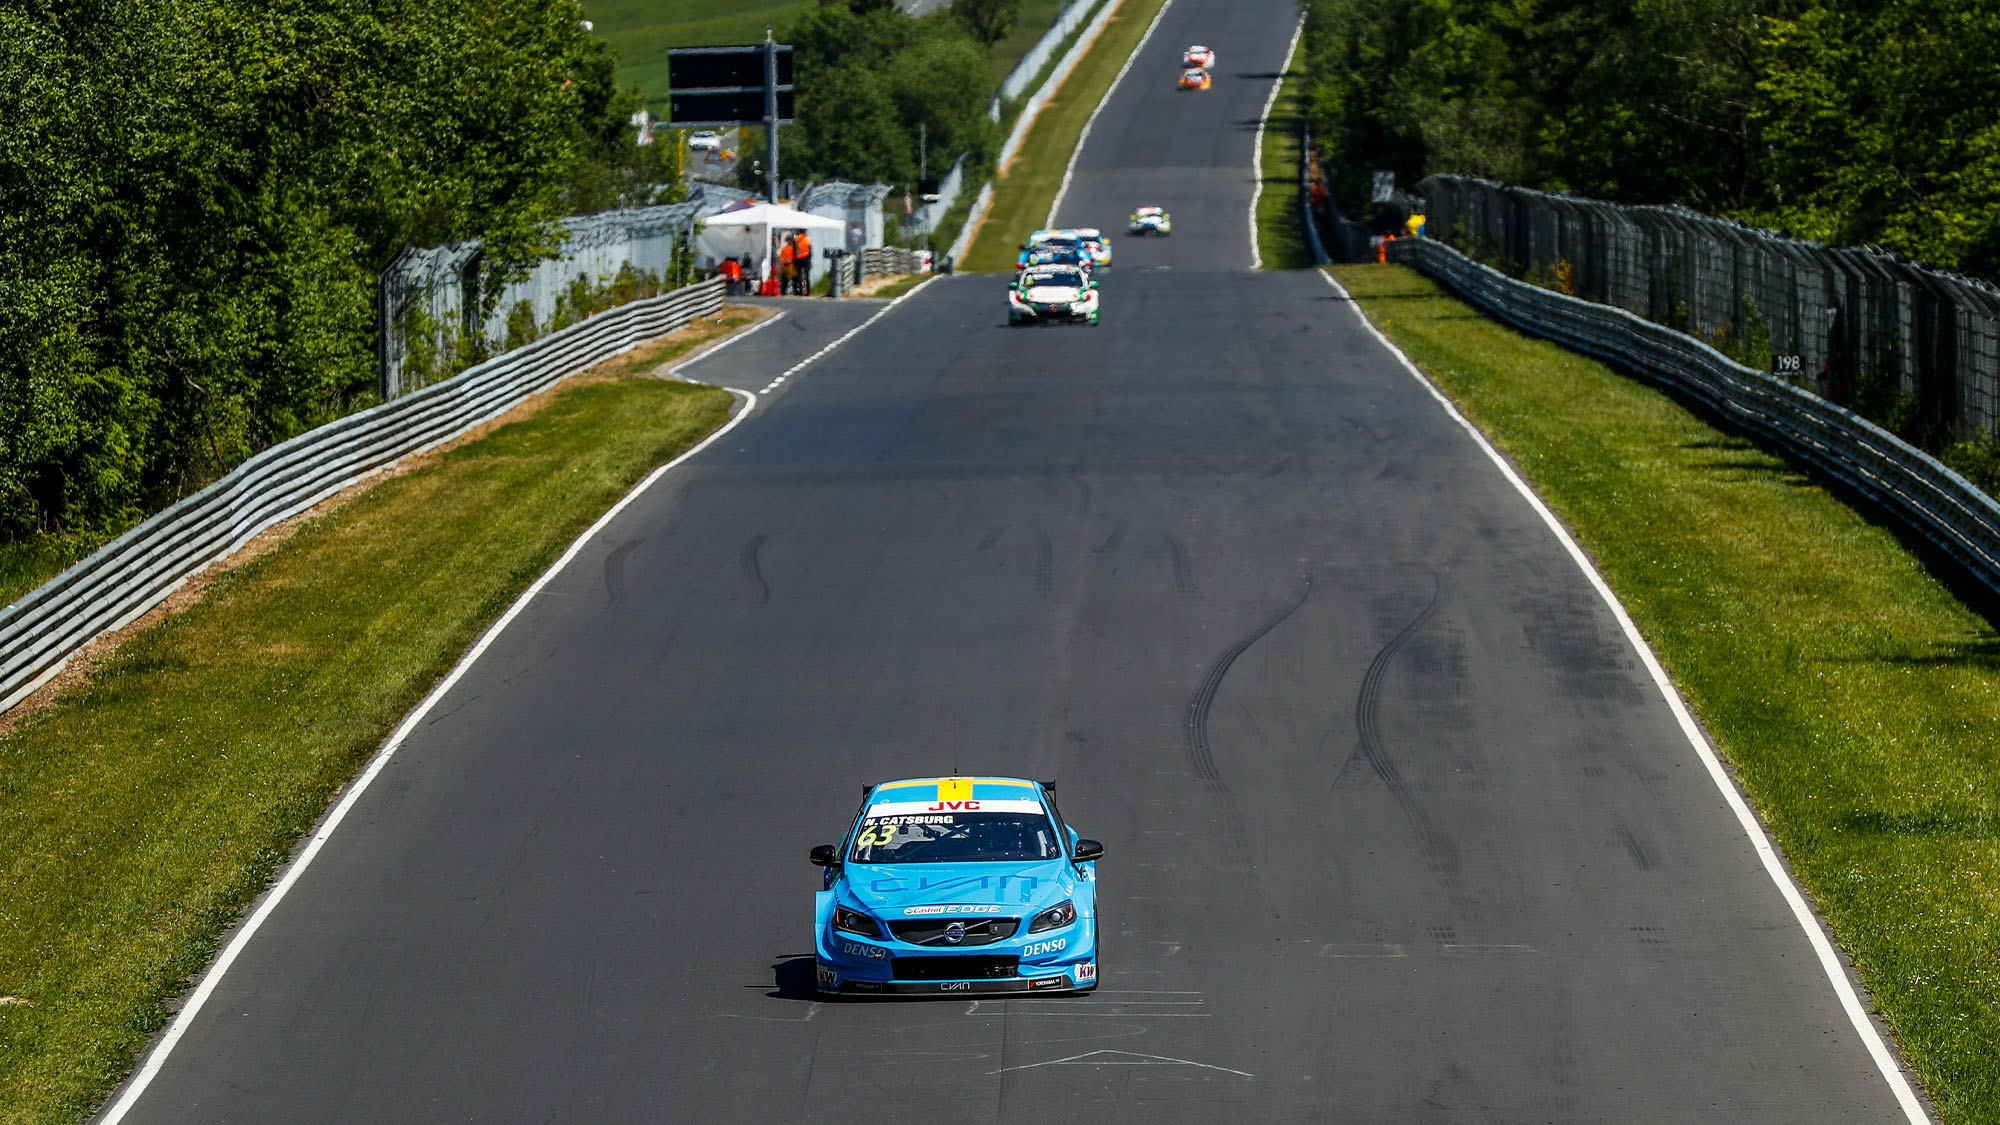 Polestar of Nicky Catsburg leads at the WTCC Nurburgring round in 2017